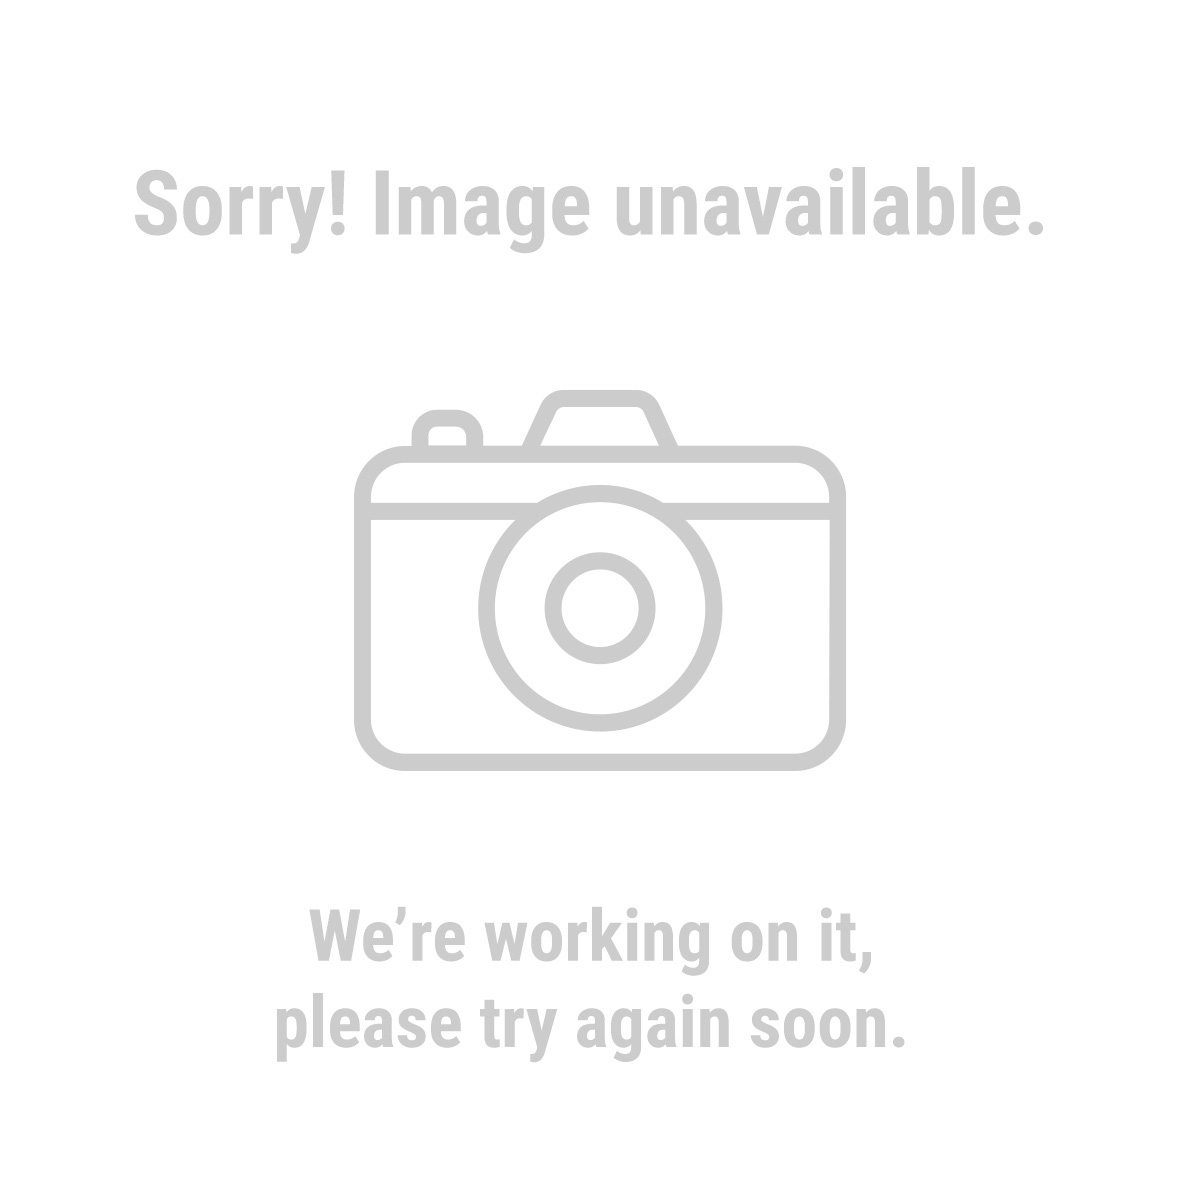 Chicago Electric 60267 25 Ft. x 14 Gauge Green Outdoor Extension Cord